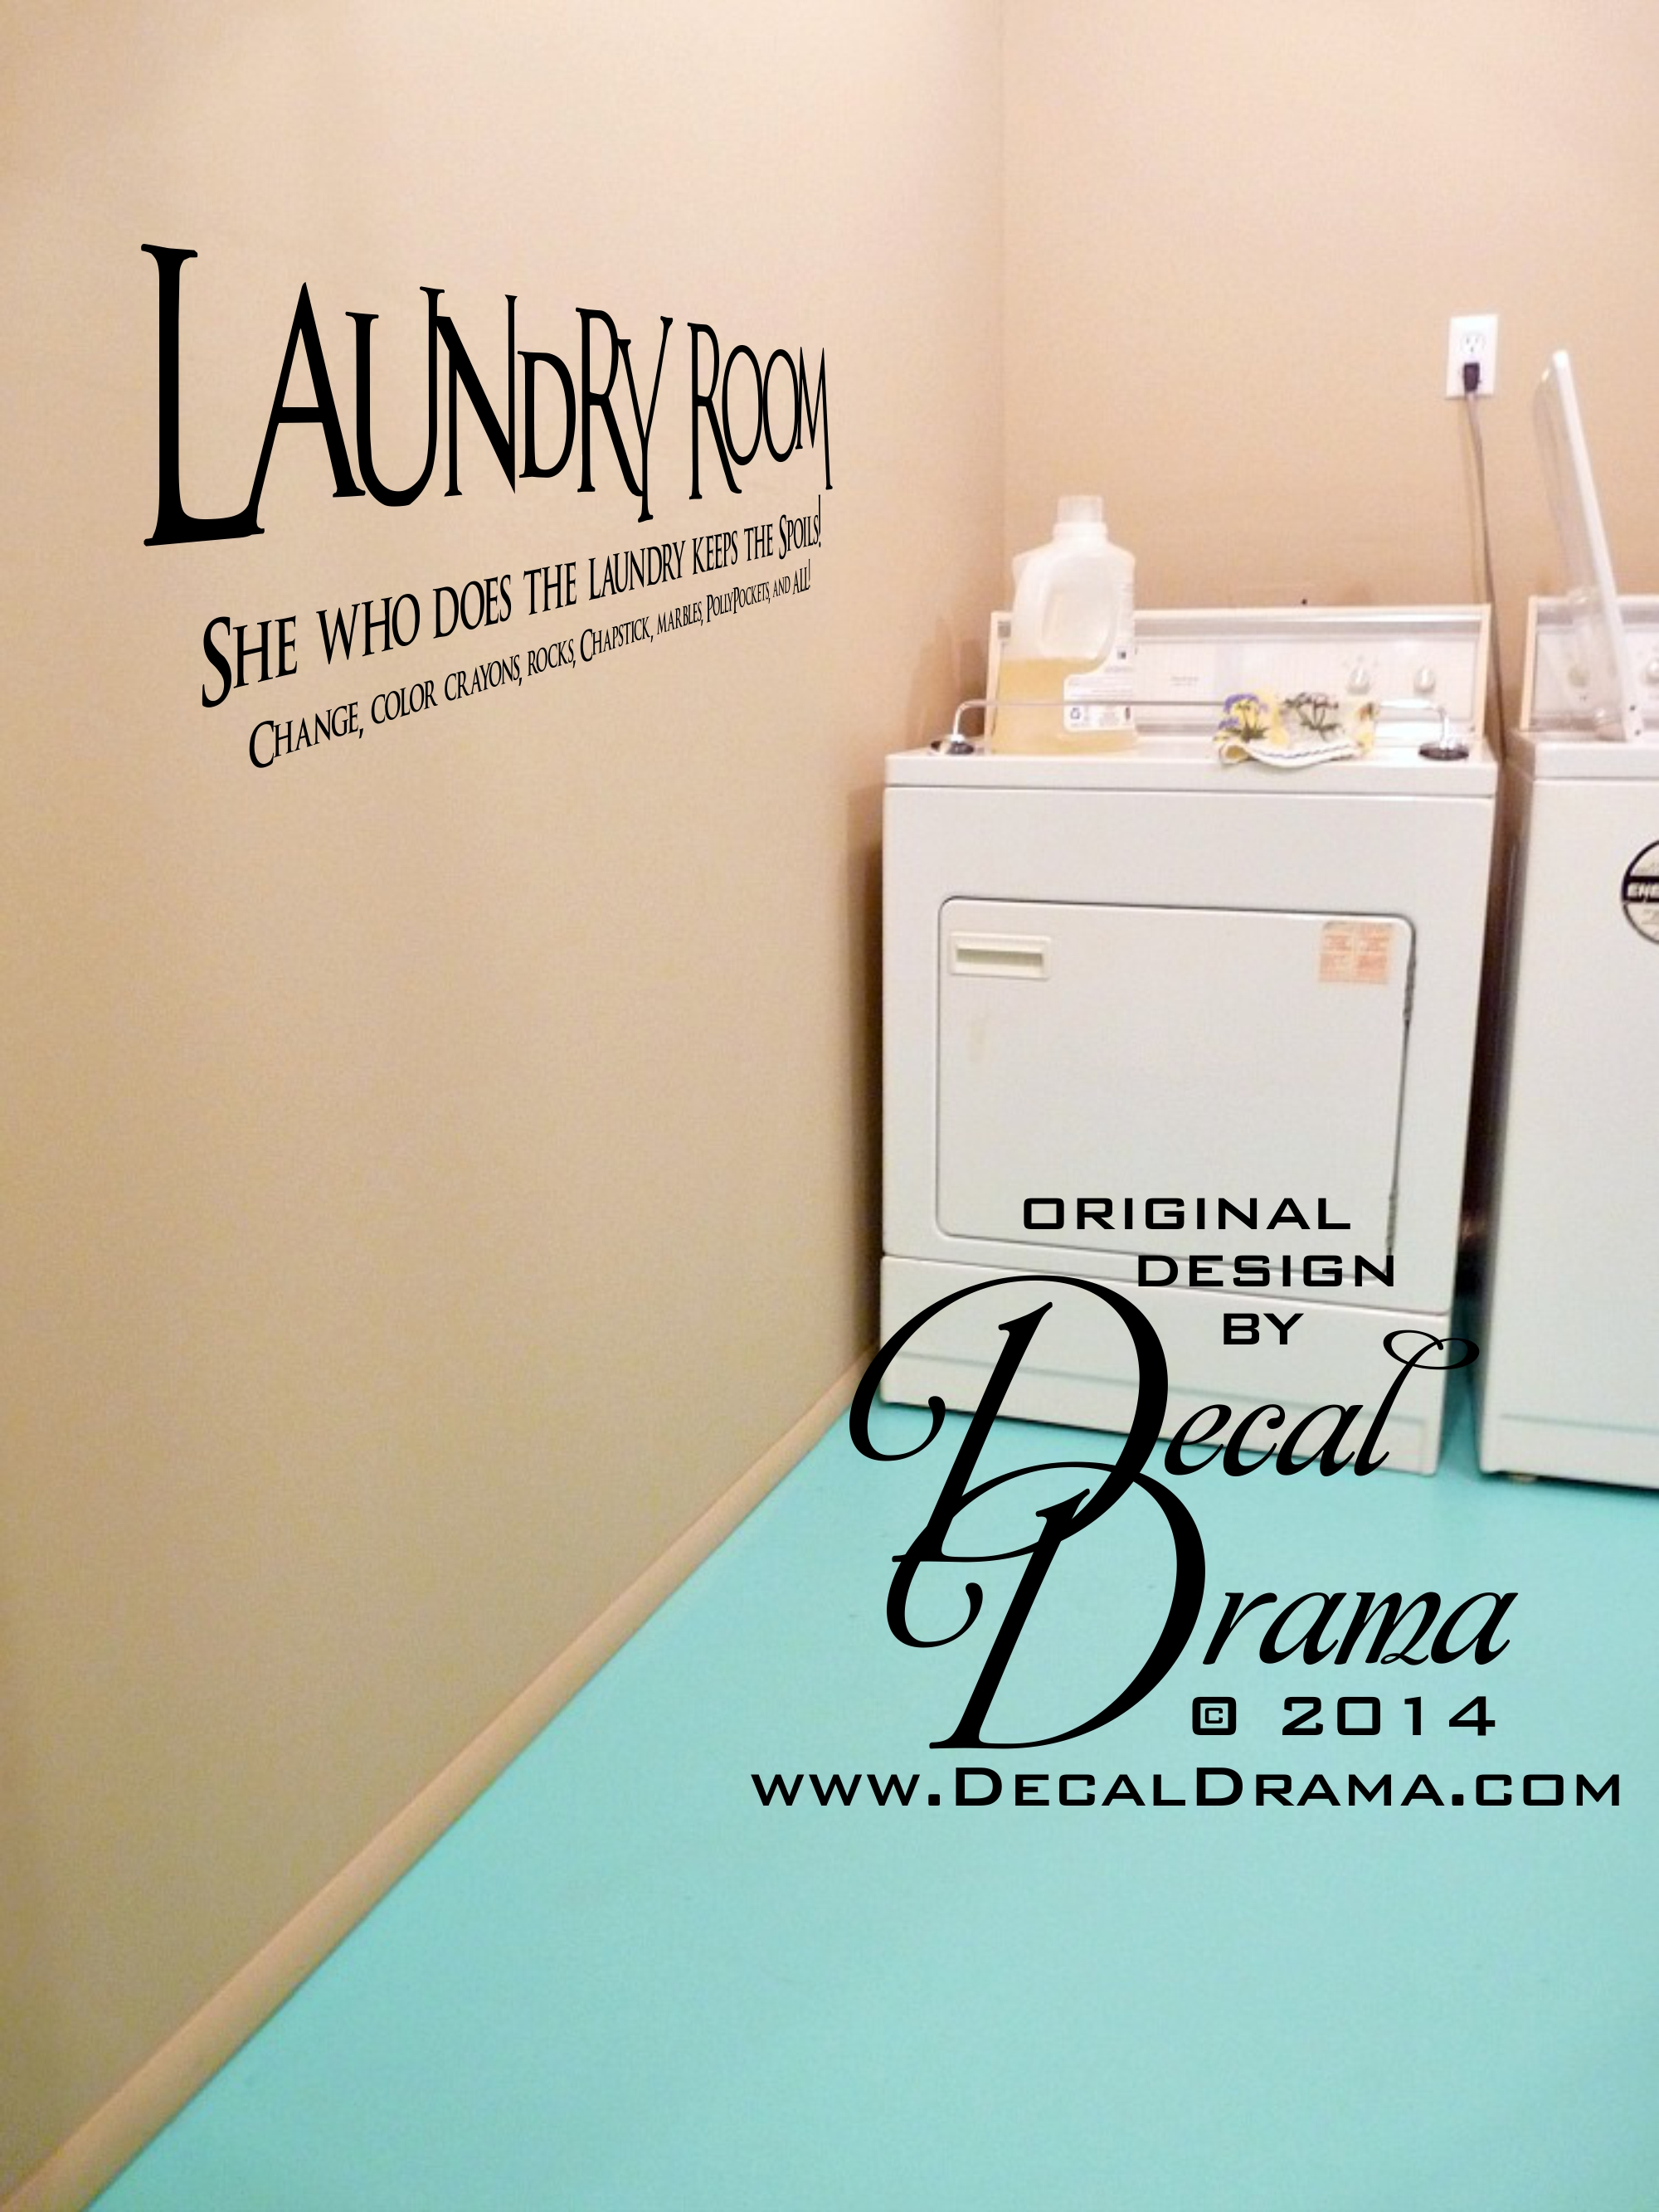 Decal Drama · LAUNDRY ROOM, She who Does the Laundry Keeps ...